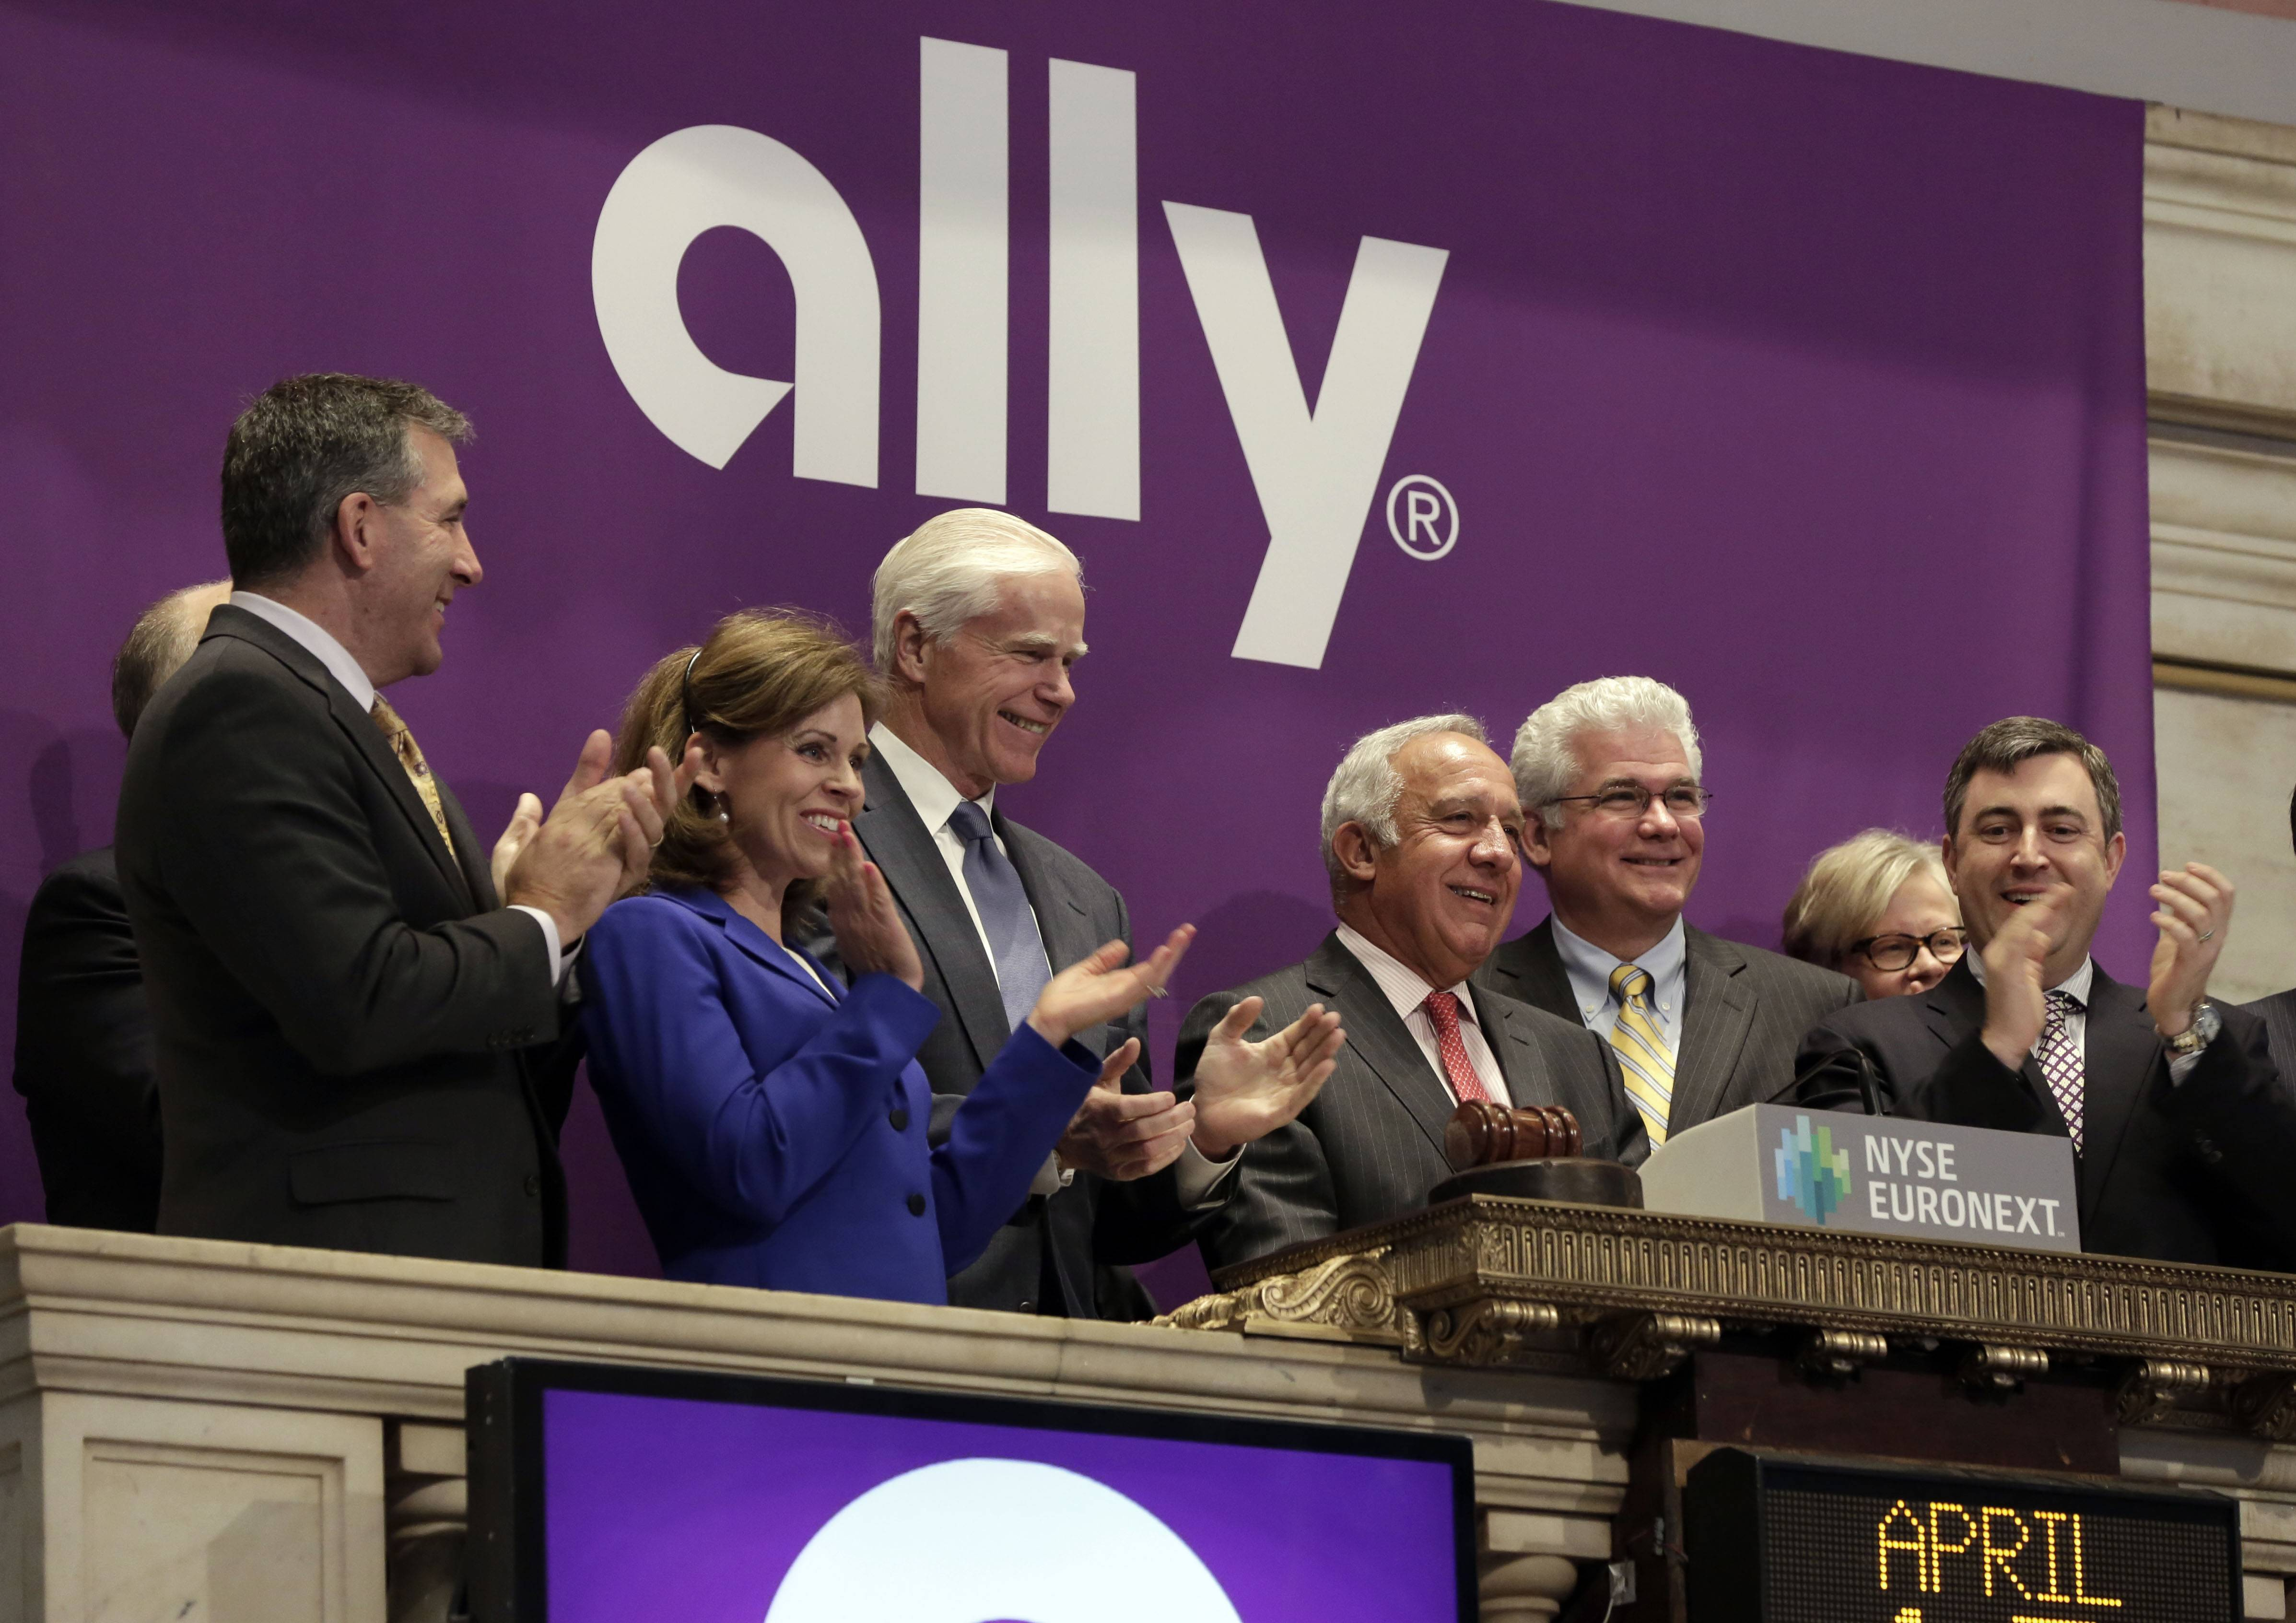 Ally Financial CEO Michael Carpenter, third from right, is applauded as he rings the New York Stock Exchange opening bell Thursday to mark his company's IPO. The Treasury Department has raised $2.38 billion after selling a large chunk of its stock in Ally Financial Inc. as part of the government's ongoing effort to recoup the billions of dollars spent bailing out companies during the 2008 financial crisis.